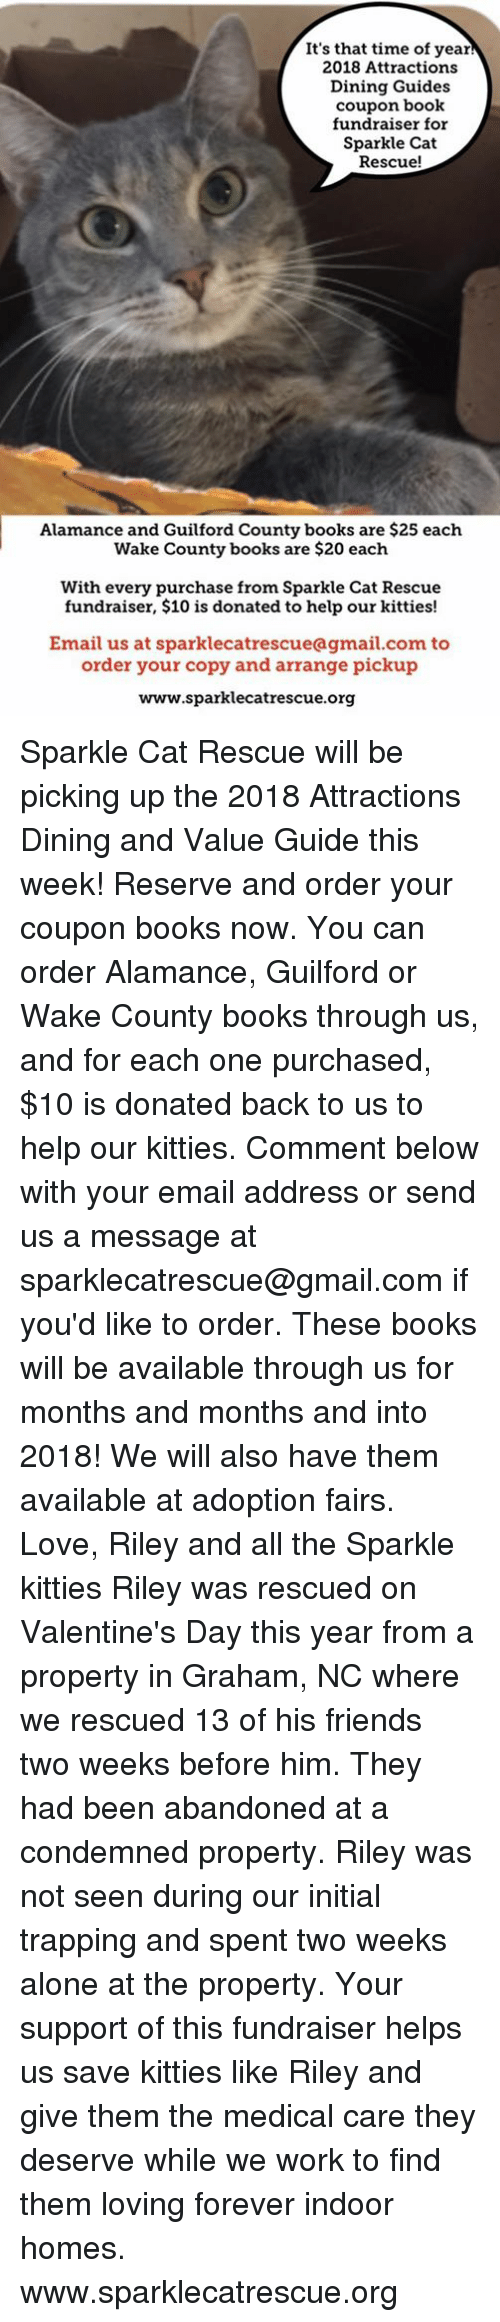 Being Alone, Books, and Friends: It's that time of year  2018 Attractions  Dining Guides  coupon book  fundraiser for  Sparkle Cat  Rescue!  Alamance and Guilford County books are $25 each  Wake County books are $20 each  With every purchase from Sparkle Cat Rescue  fundraiser, $10 is donated to help our kitties!  Email us at sparklecatrescueagmail.com to  order your copy and arrange pickup  www.sparklecatrescue.org Sparkle Cat Rescue will be picking up the 2018 Attractions Dining and Value Guide this week! Reserve and order your coupon books now. You can order Alamance, Guilford or Wake County books through us, and for each one purchased, $10 is donated back to us to help our kitties.   Comment below with your email address or send us a message at sparklecatrescue@gmail.com if you'd like to order.   These books will be available through us for months and months and into 2018! We will also have them available at adoption fairs.   Love, Riley and all the Sparkle kitties  Riley was rescued on Valentine's Day this year from a property in Graham, NC where we rescued 13 of his friends two weeks before him. They had been abandoned at a condemned property. Riley was not seen during our initial trapping and spent two weeks alone at the property. Your support of this fundraiser helps us save kitties like Riley and give them the medical care they deserve while we work to find them loving forever indoor homes.   www.sparklecatrescue.org